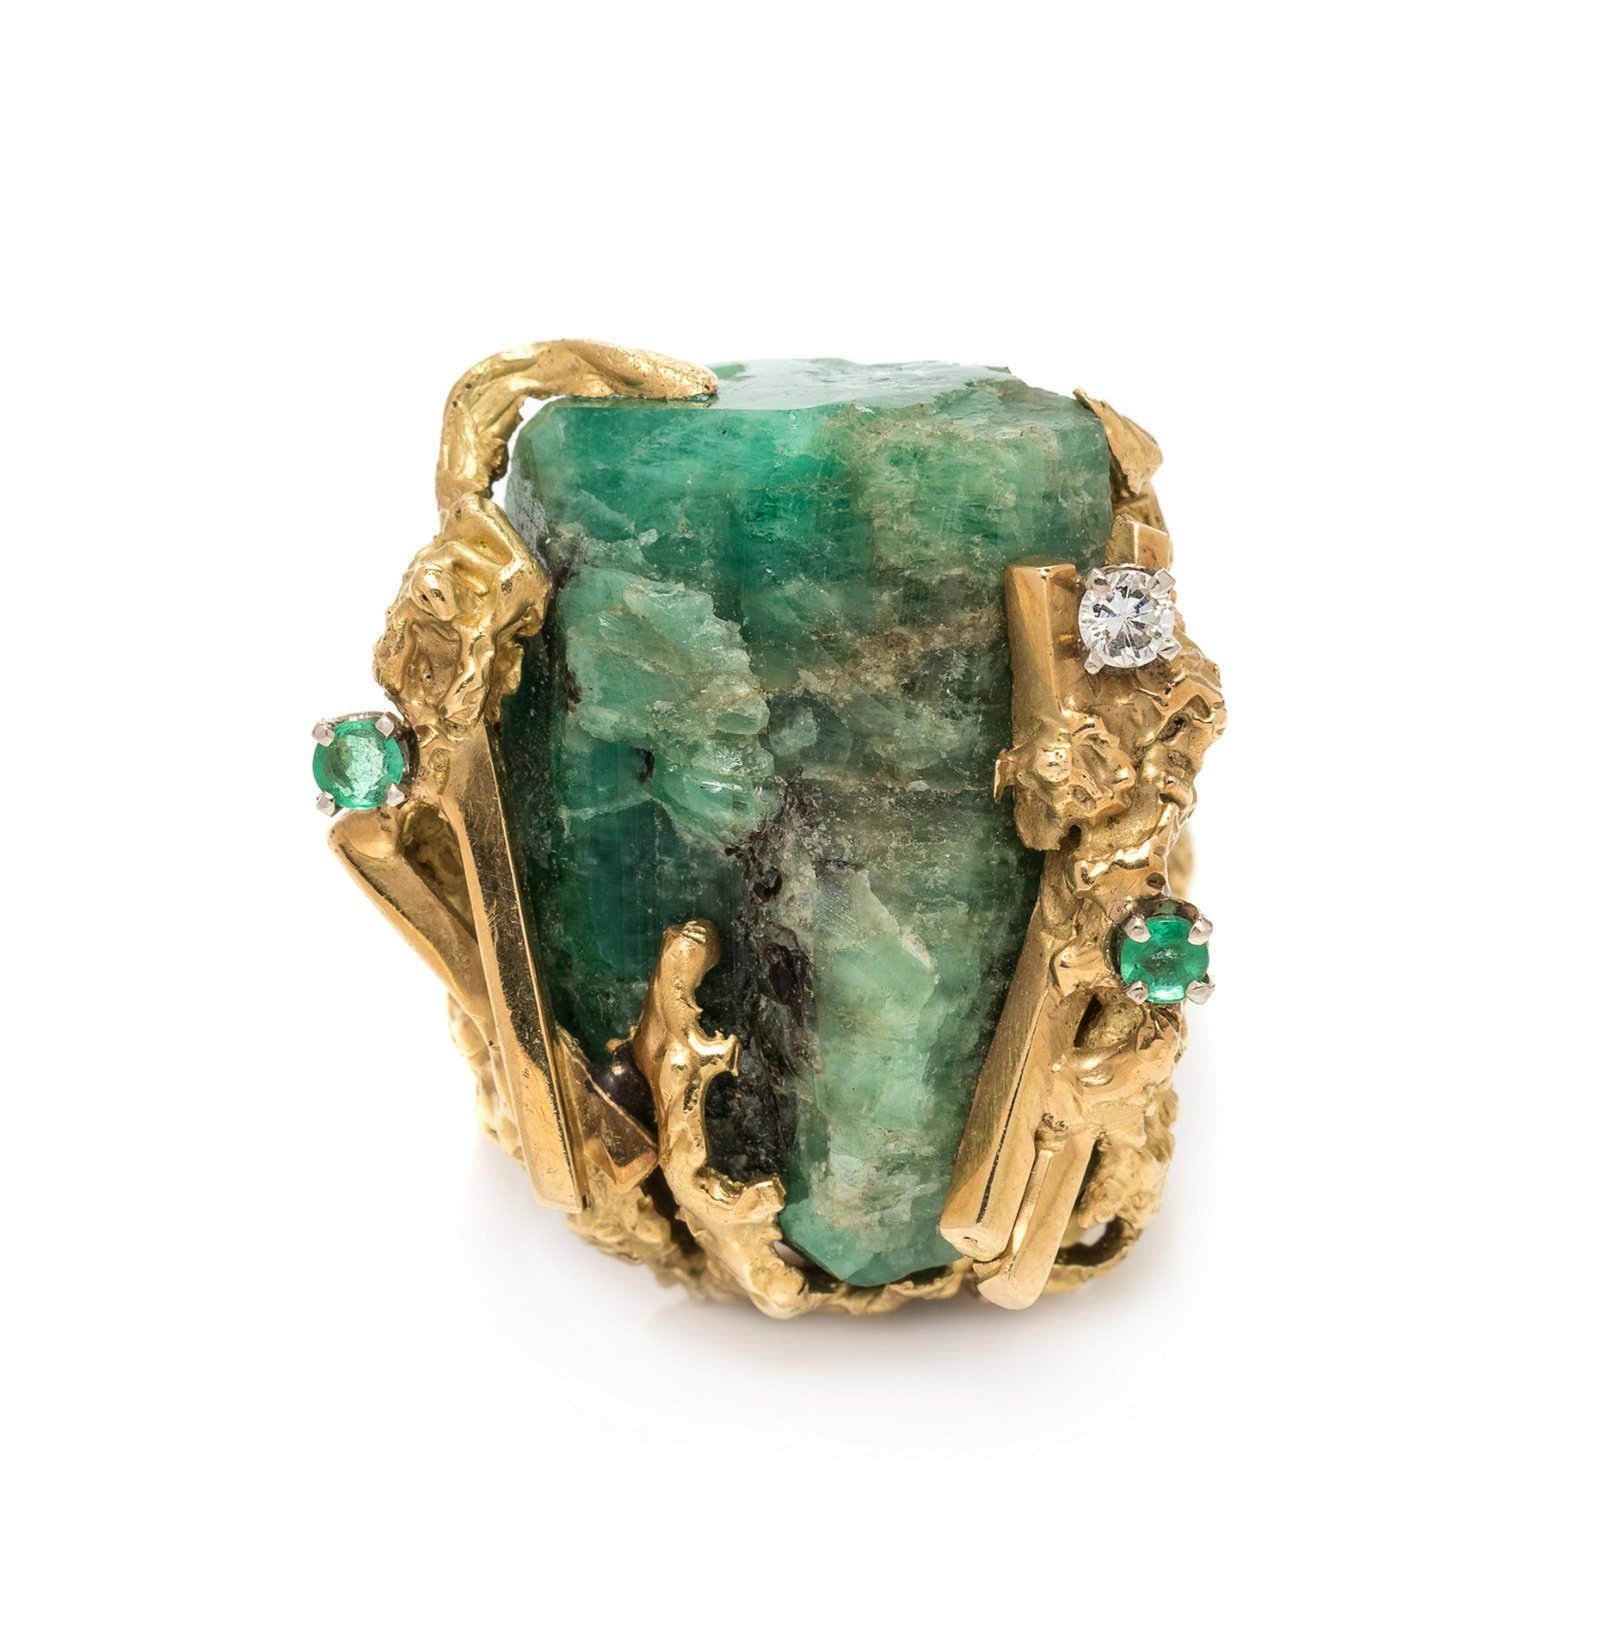 A Brutalist 18 Karat Yellow Gold, Emerald Crystal and